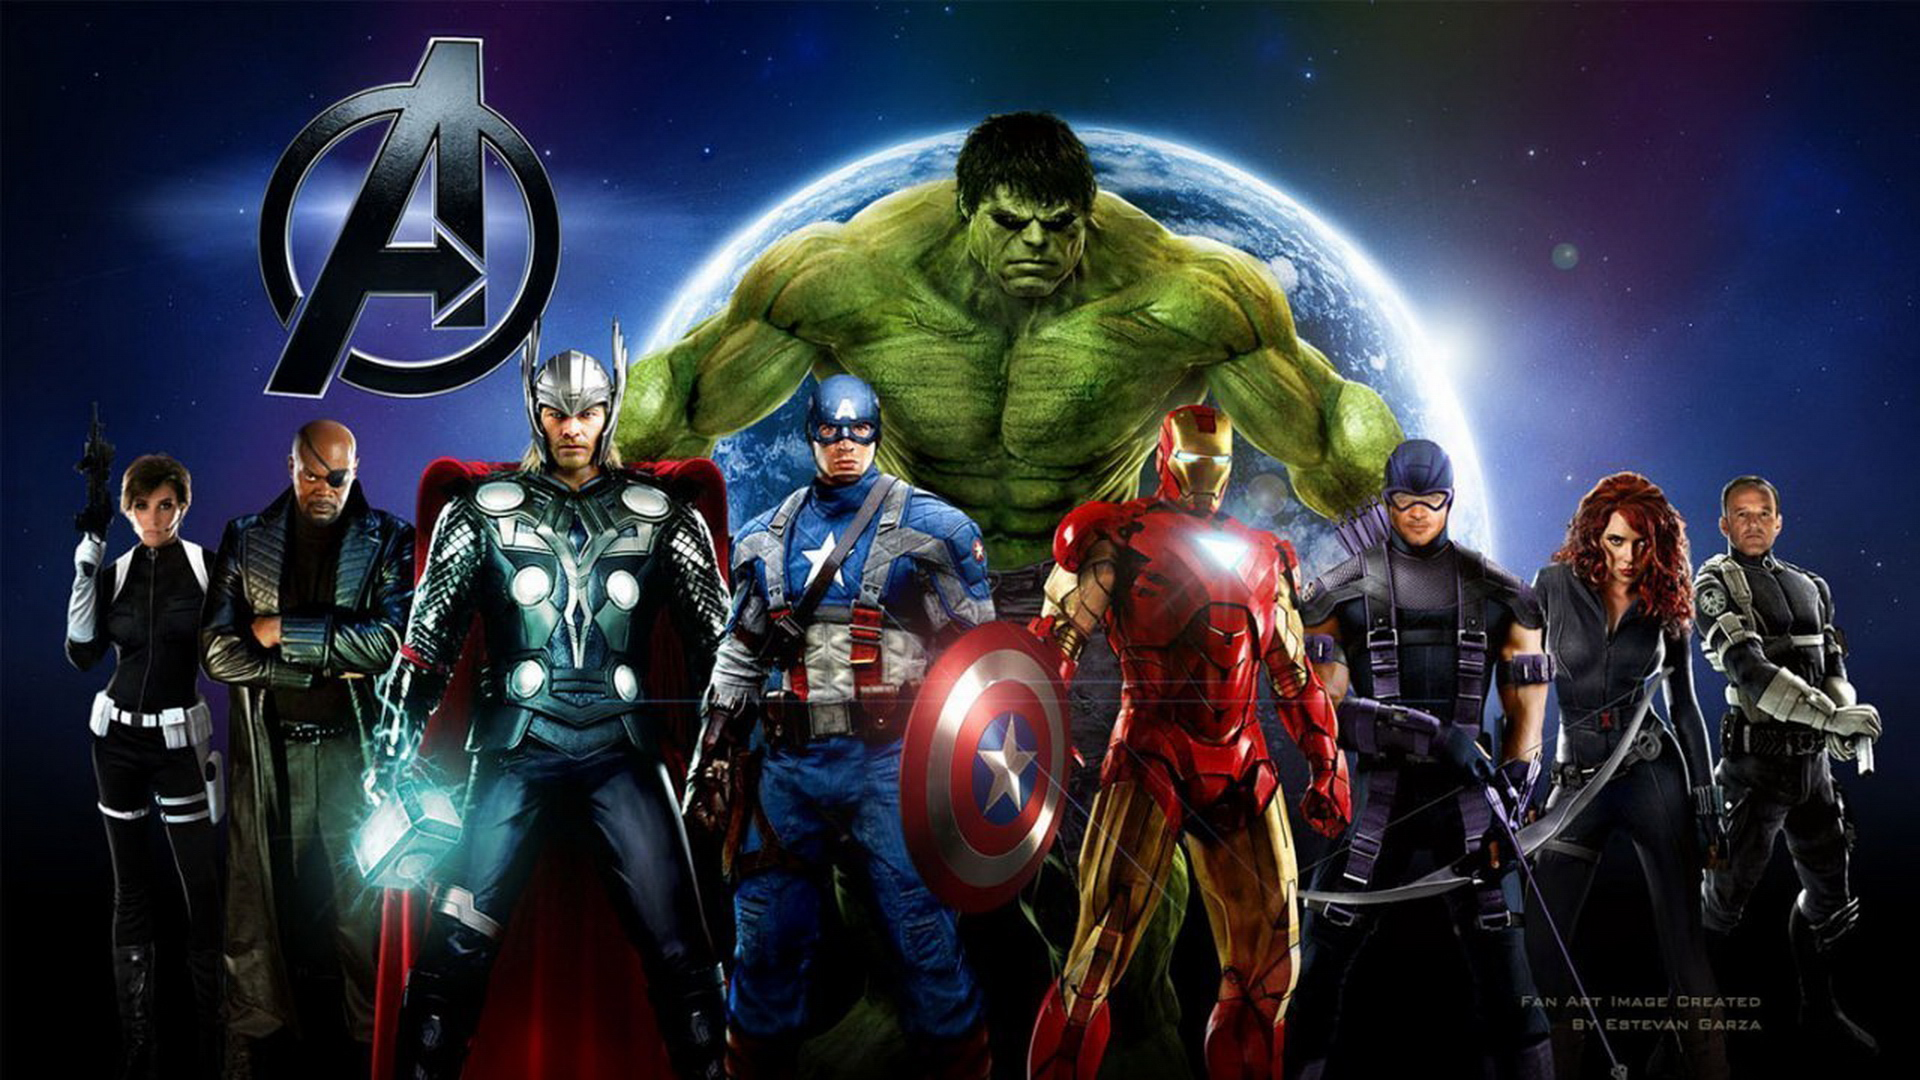 Marvels The Avengers 2012 Wallpaper Heros 4 HD Desktop 1920x1080